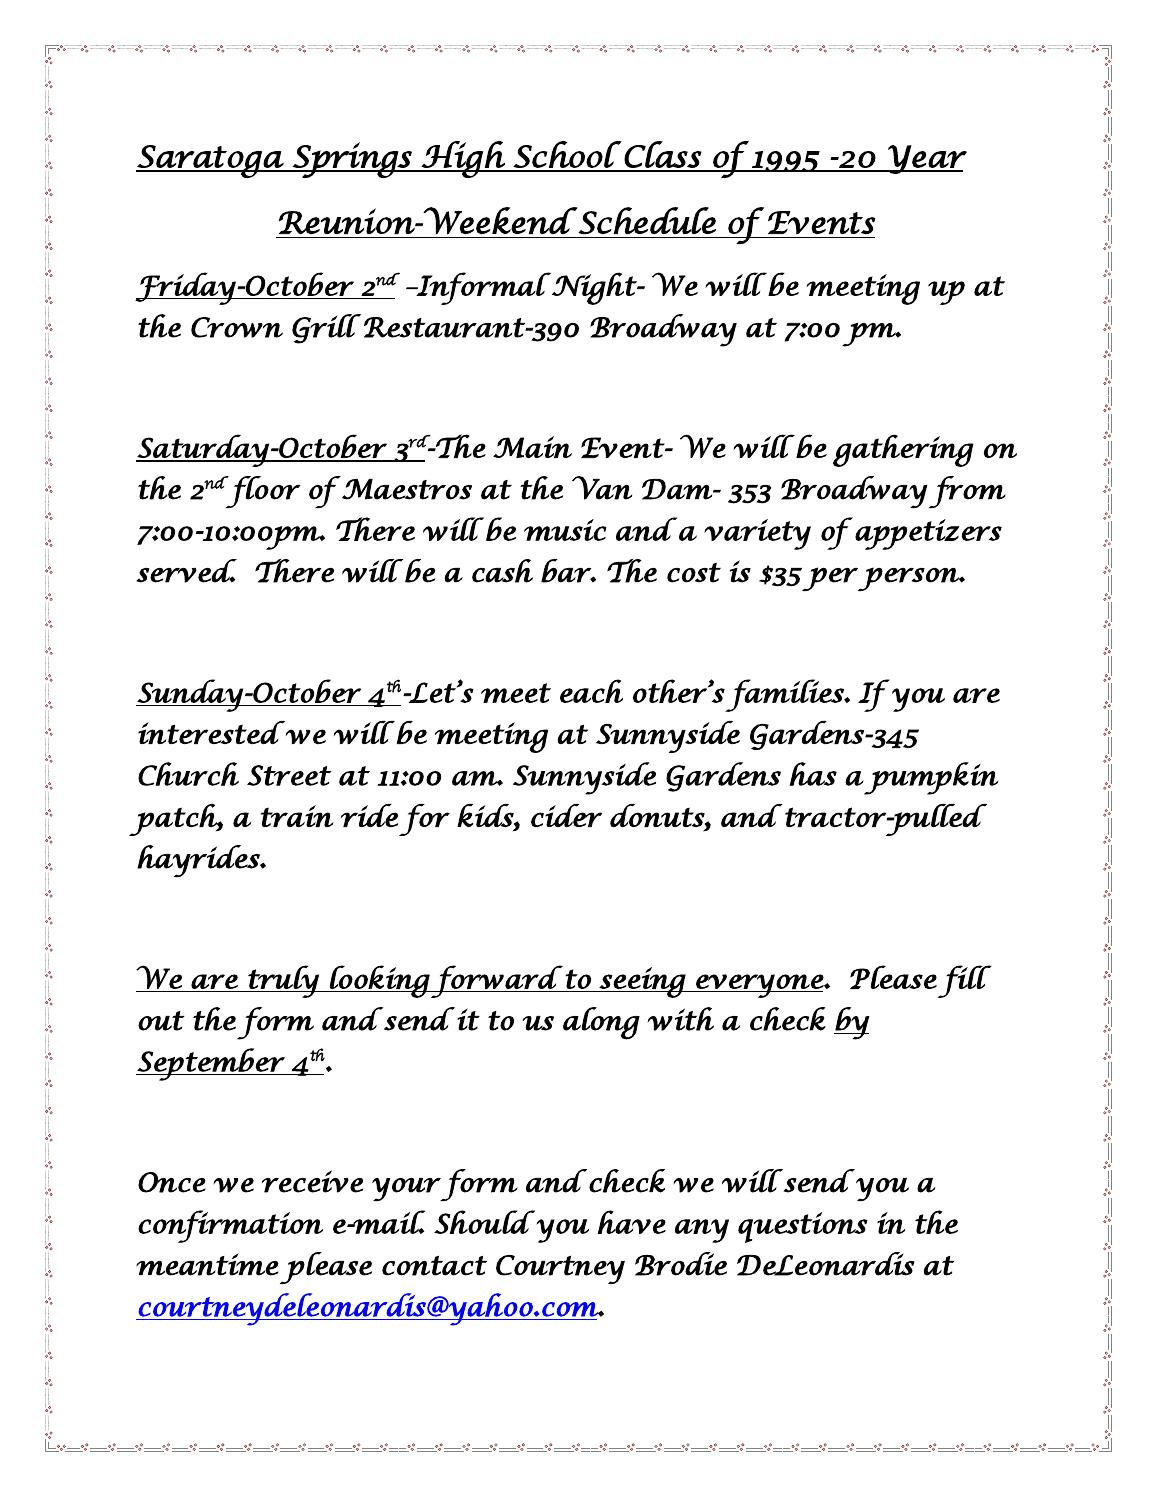 Class of 1995 20 year reunion weekend schedule by RobD - issuu